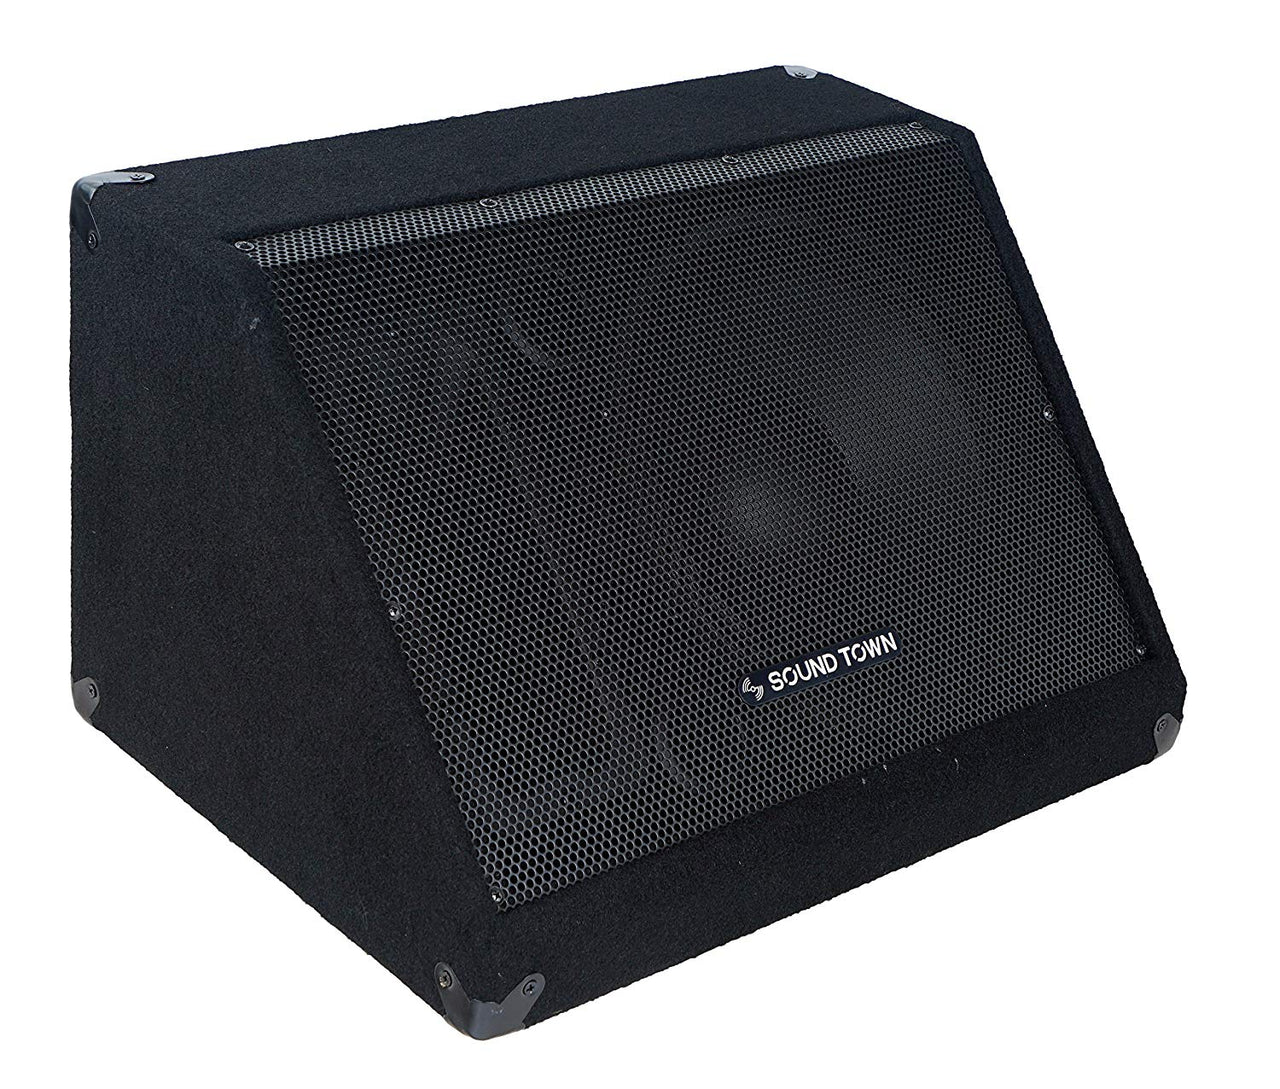 "METIS-12M-PAIR<br/>METIS Series 2-Pack 12"" 500W Passive DJ PA Stage Floor Monitor Speakers with Compression Driver for Live Sound, Bar, Church"